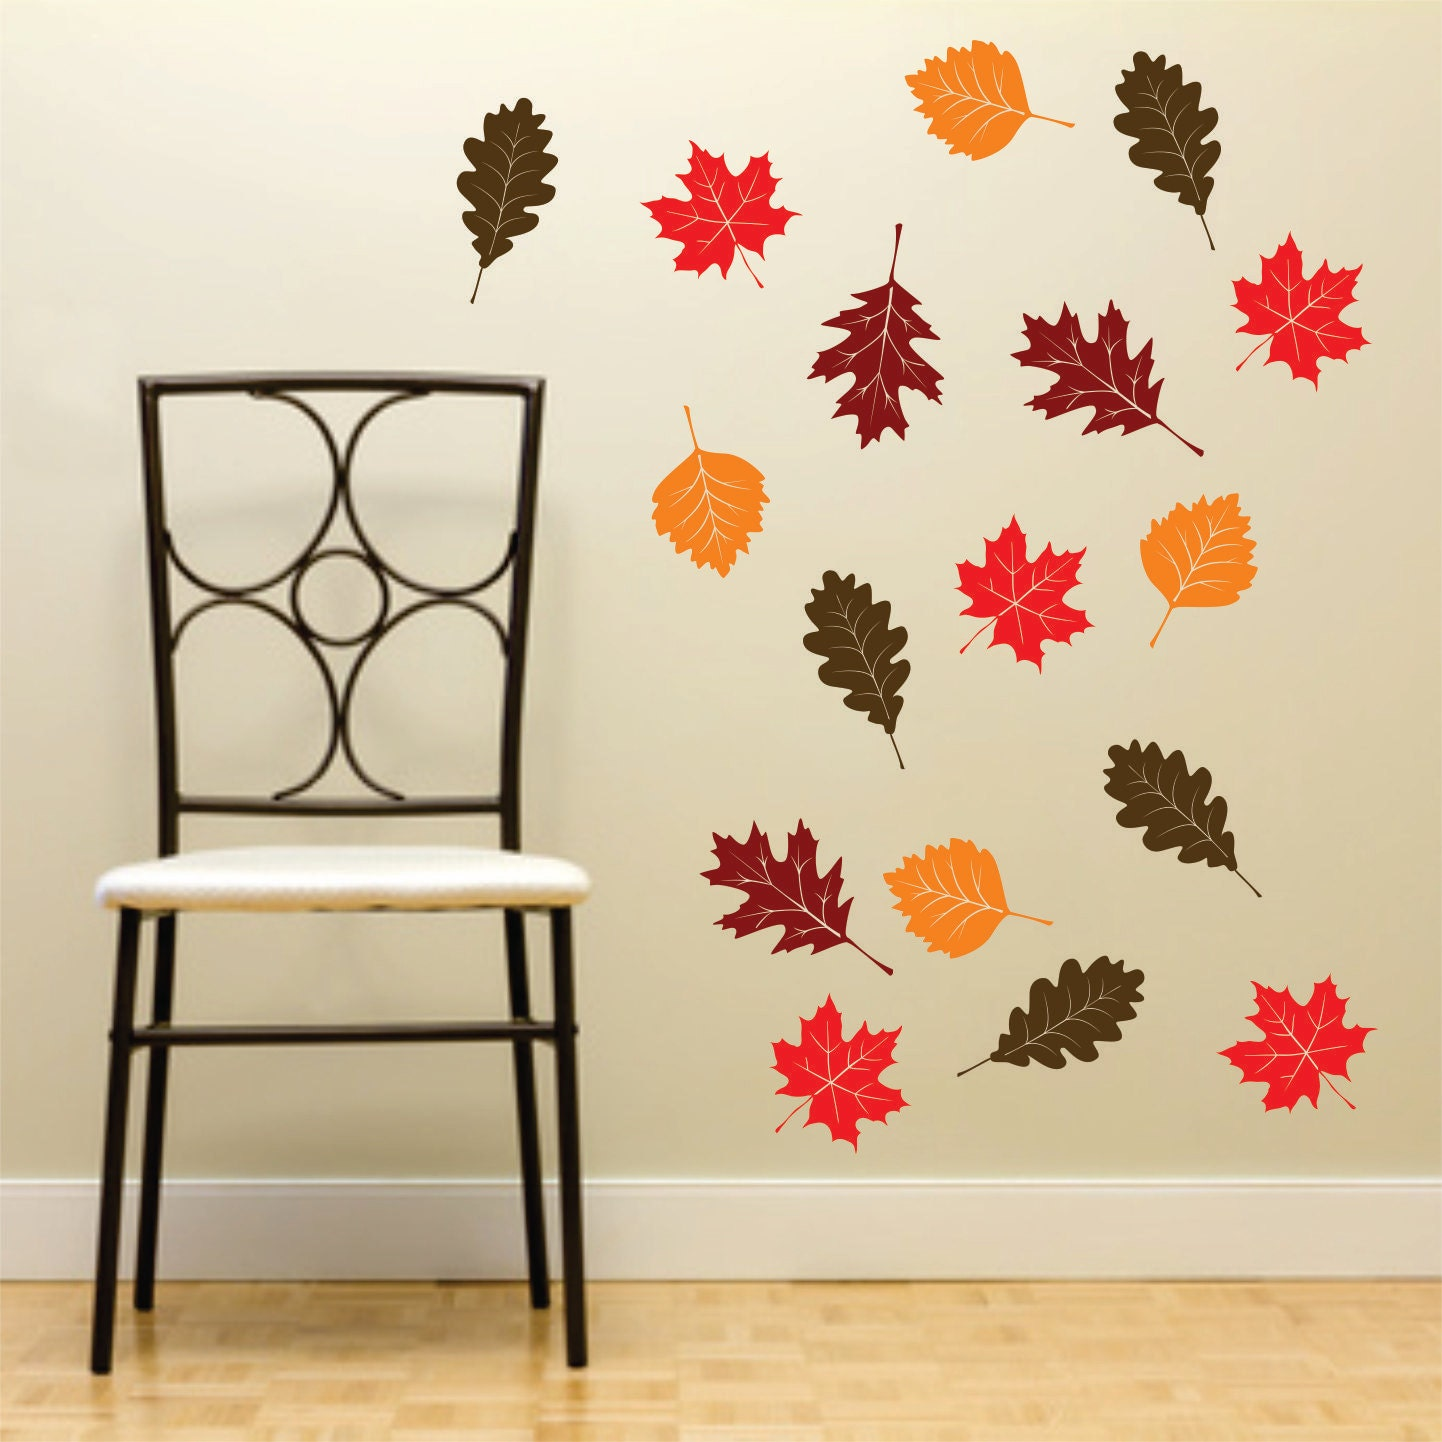 Fall Leaf Wall Decals Set Of 20 Autumn Leaves Vinyl Rub On